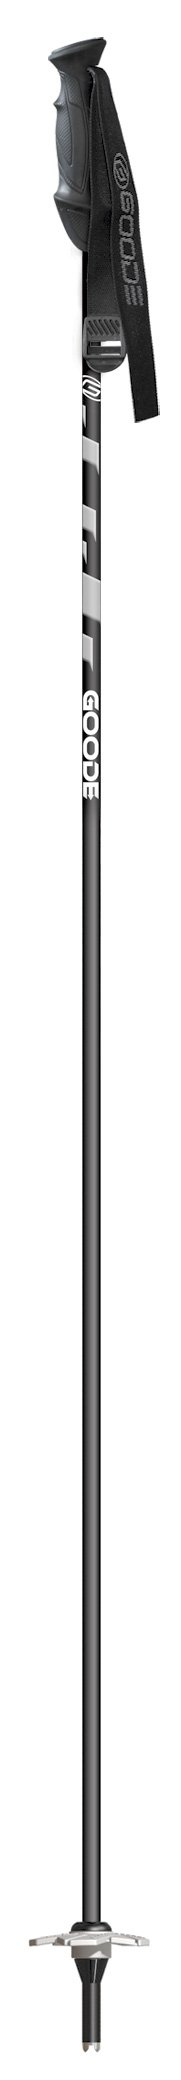 Goode G-Max Pole with Patented Composite Fiber shaft, Summit Silver, 50-Inch/125cm by Goode